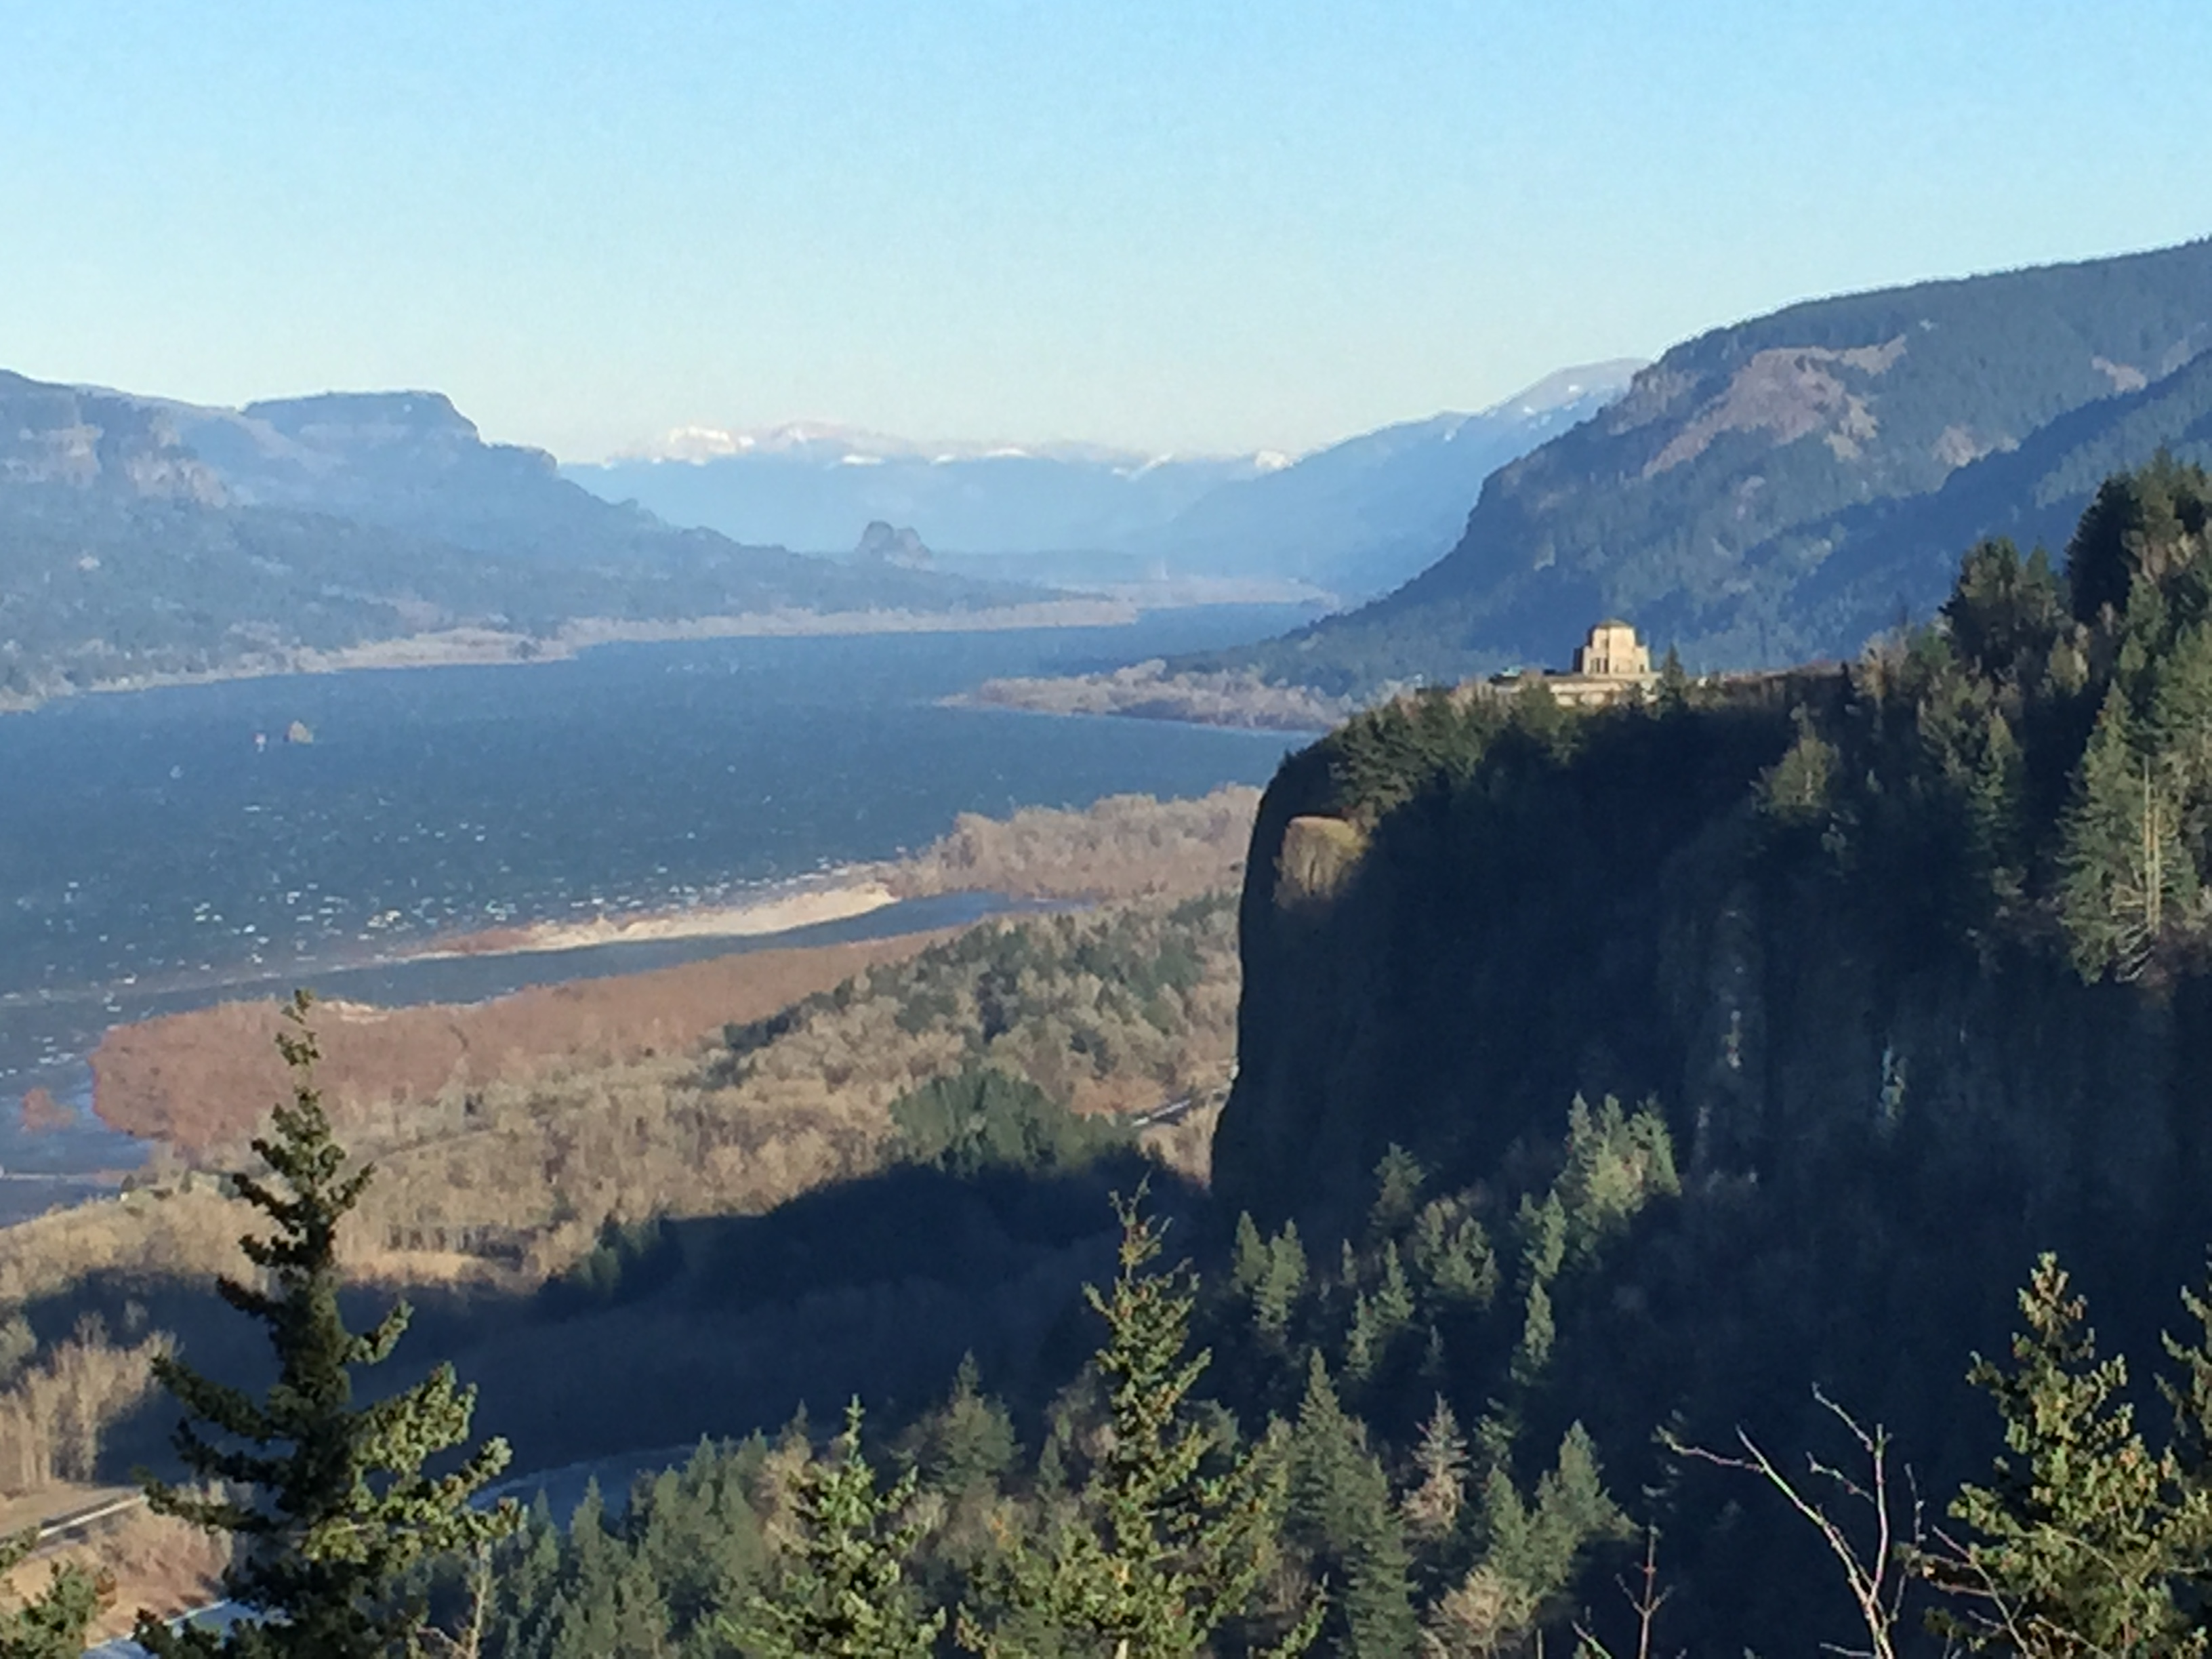 Zooming in on the Vista House overlooking the Columbia River Gorge